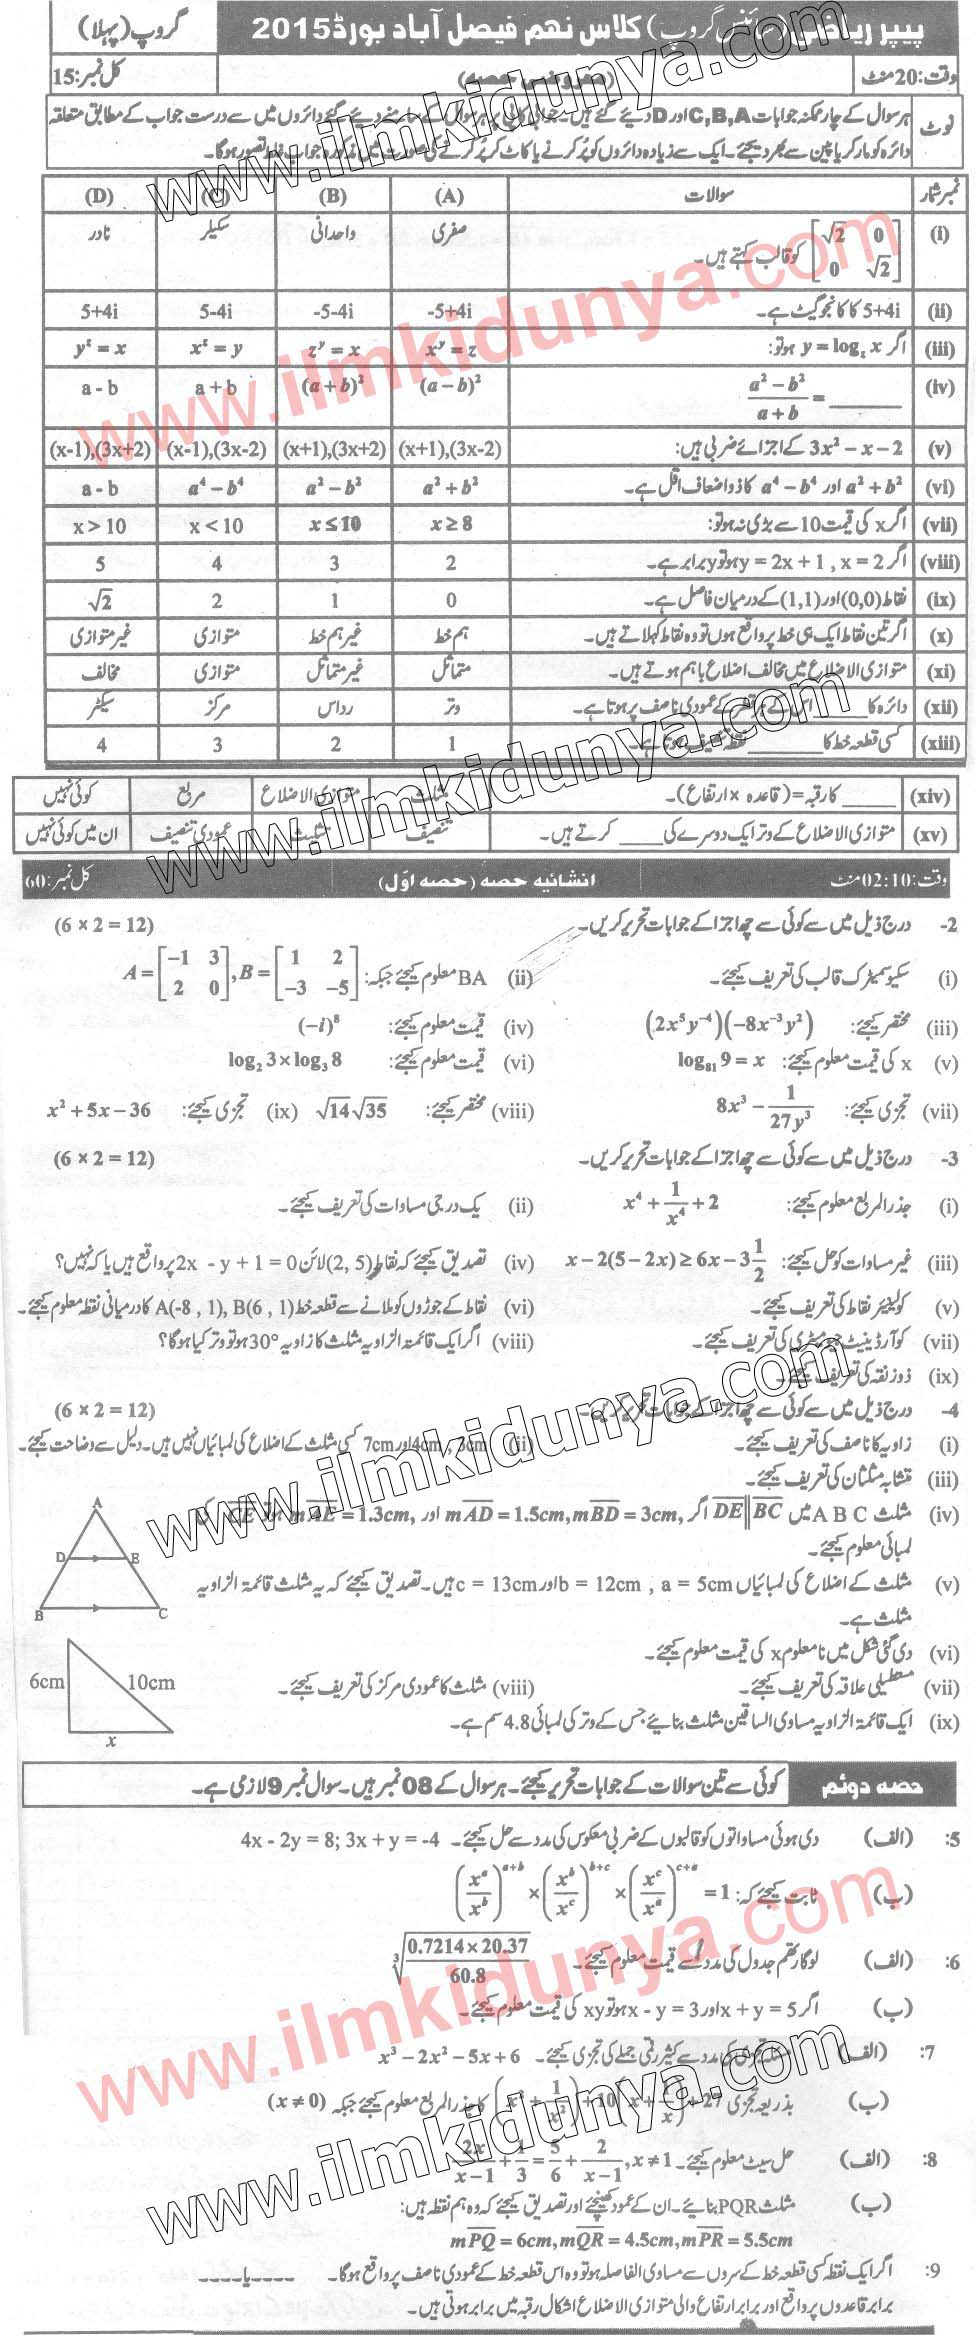 Past Papers 2015 Faisalabad Board 9th Class Math Group 1